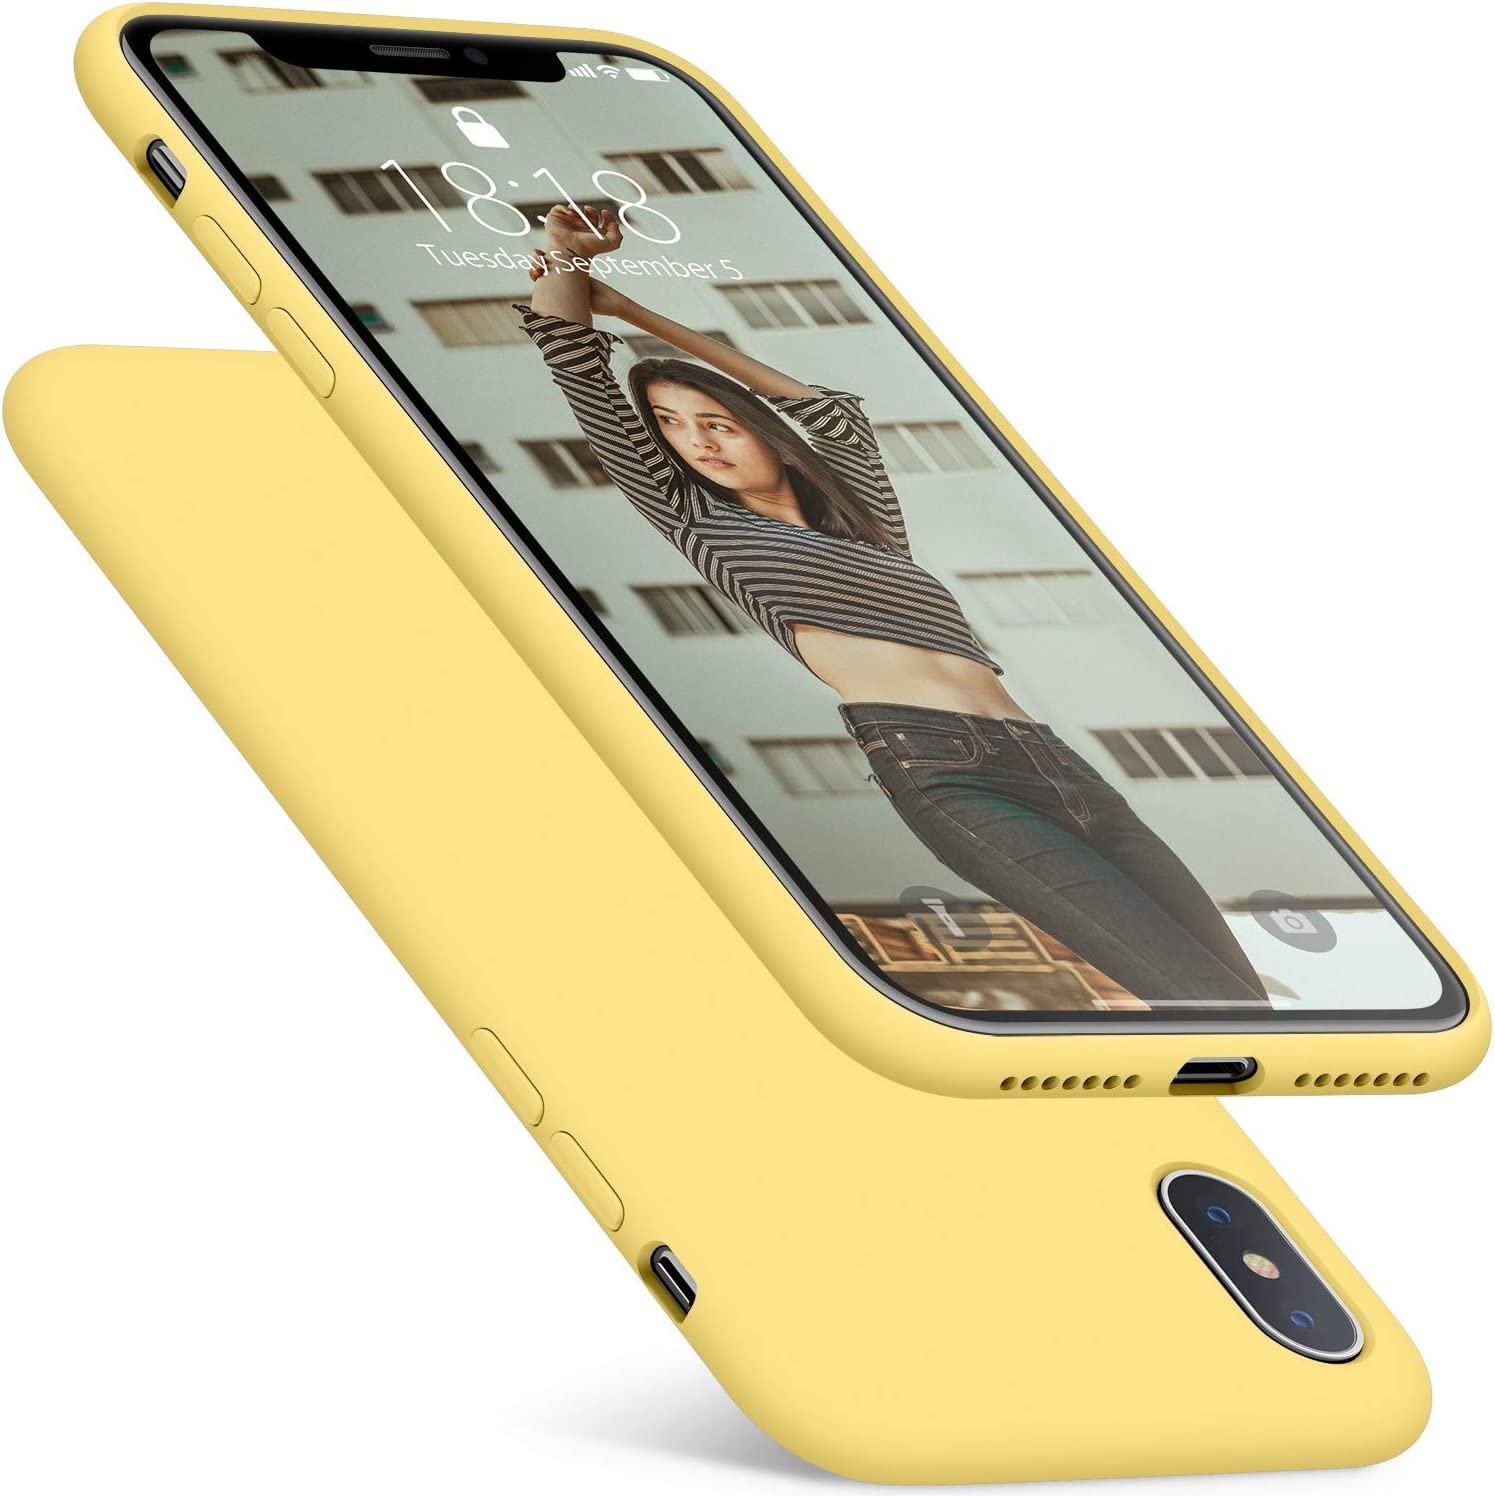 DTTO Compatible with iPhone Xs Max Case, 7 Colors Silicone Case [Romance Series] Slim Fit Cover with Hybrid Protection for iPhone 10s Max 6.5 Inch (2018 Released) - Yellow